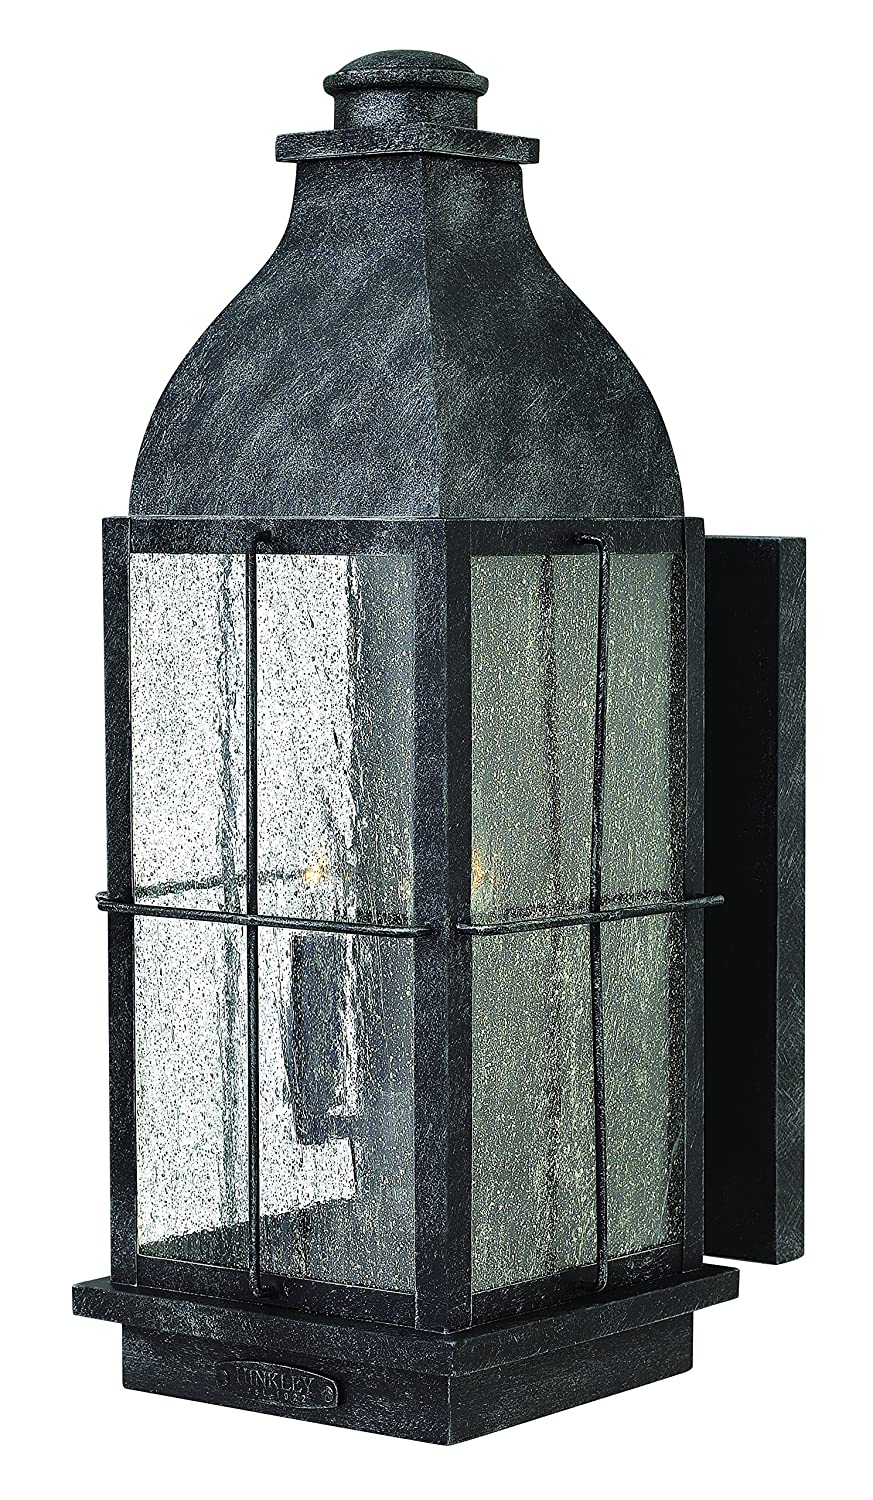 Hinkley 2045GS Outdoor Bingham Light by Hinkley B00IH1E3KW